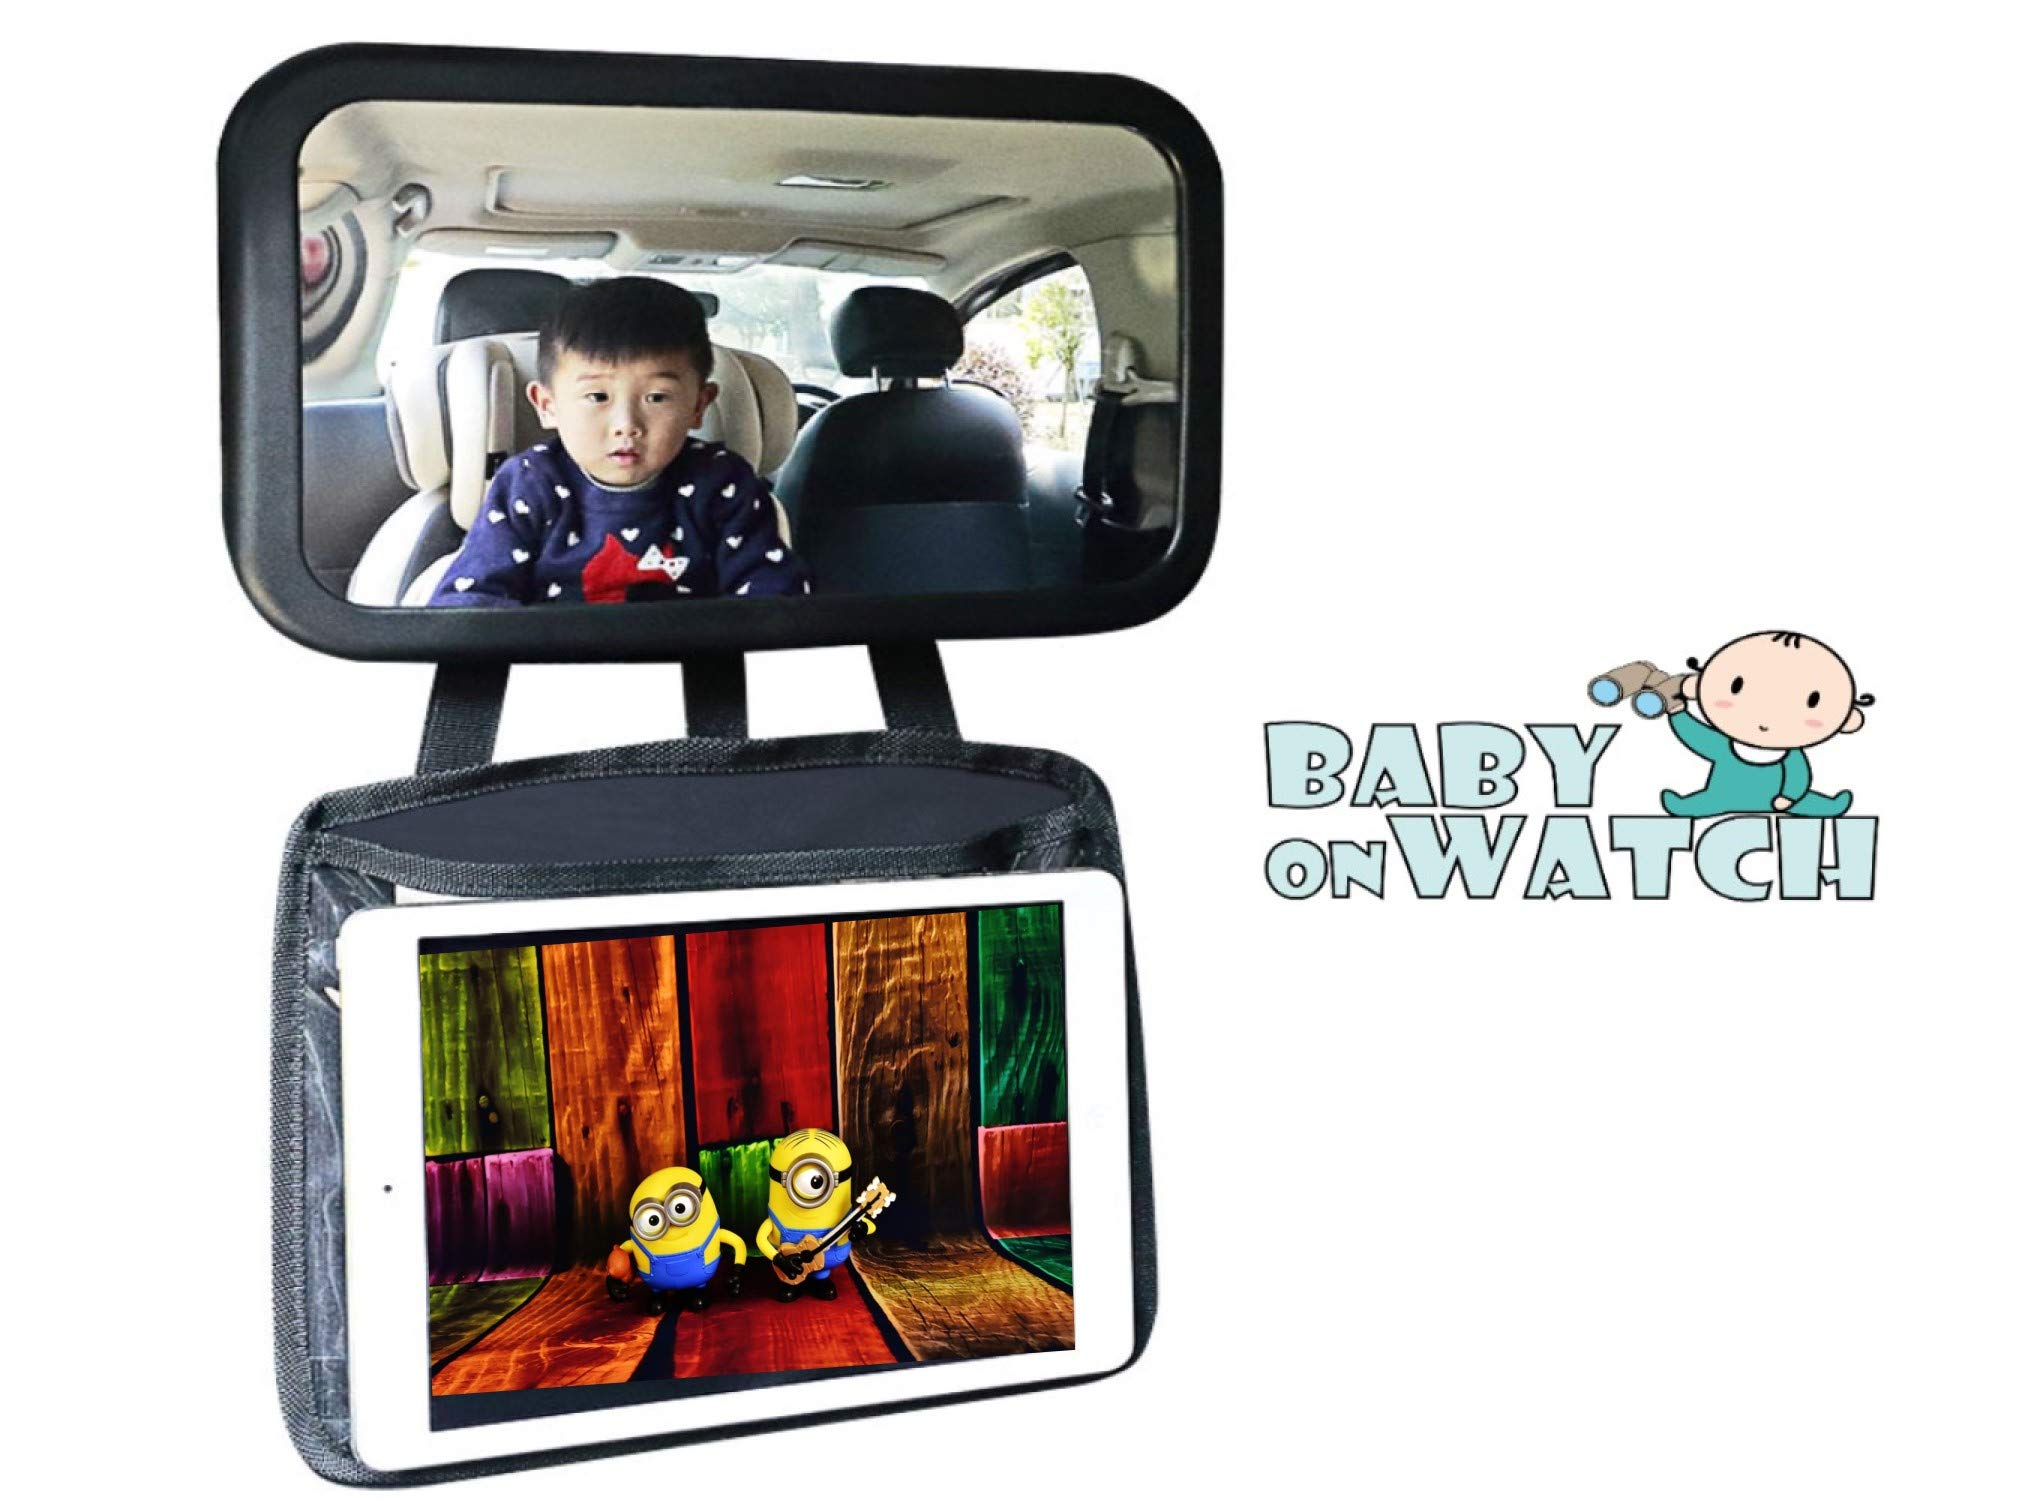 Baby Car Mirror with Ipad Holder   View Infant in Rear Facing Car Seat   Baby Mirror for Back Seat with Tablet Holder by Baby on Watch